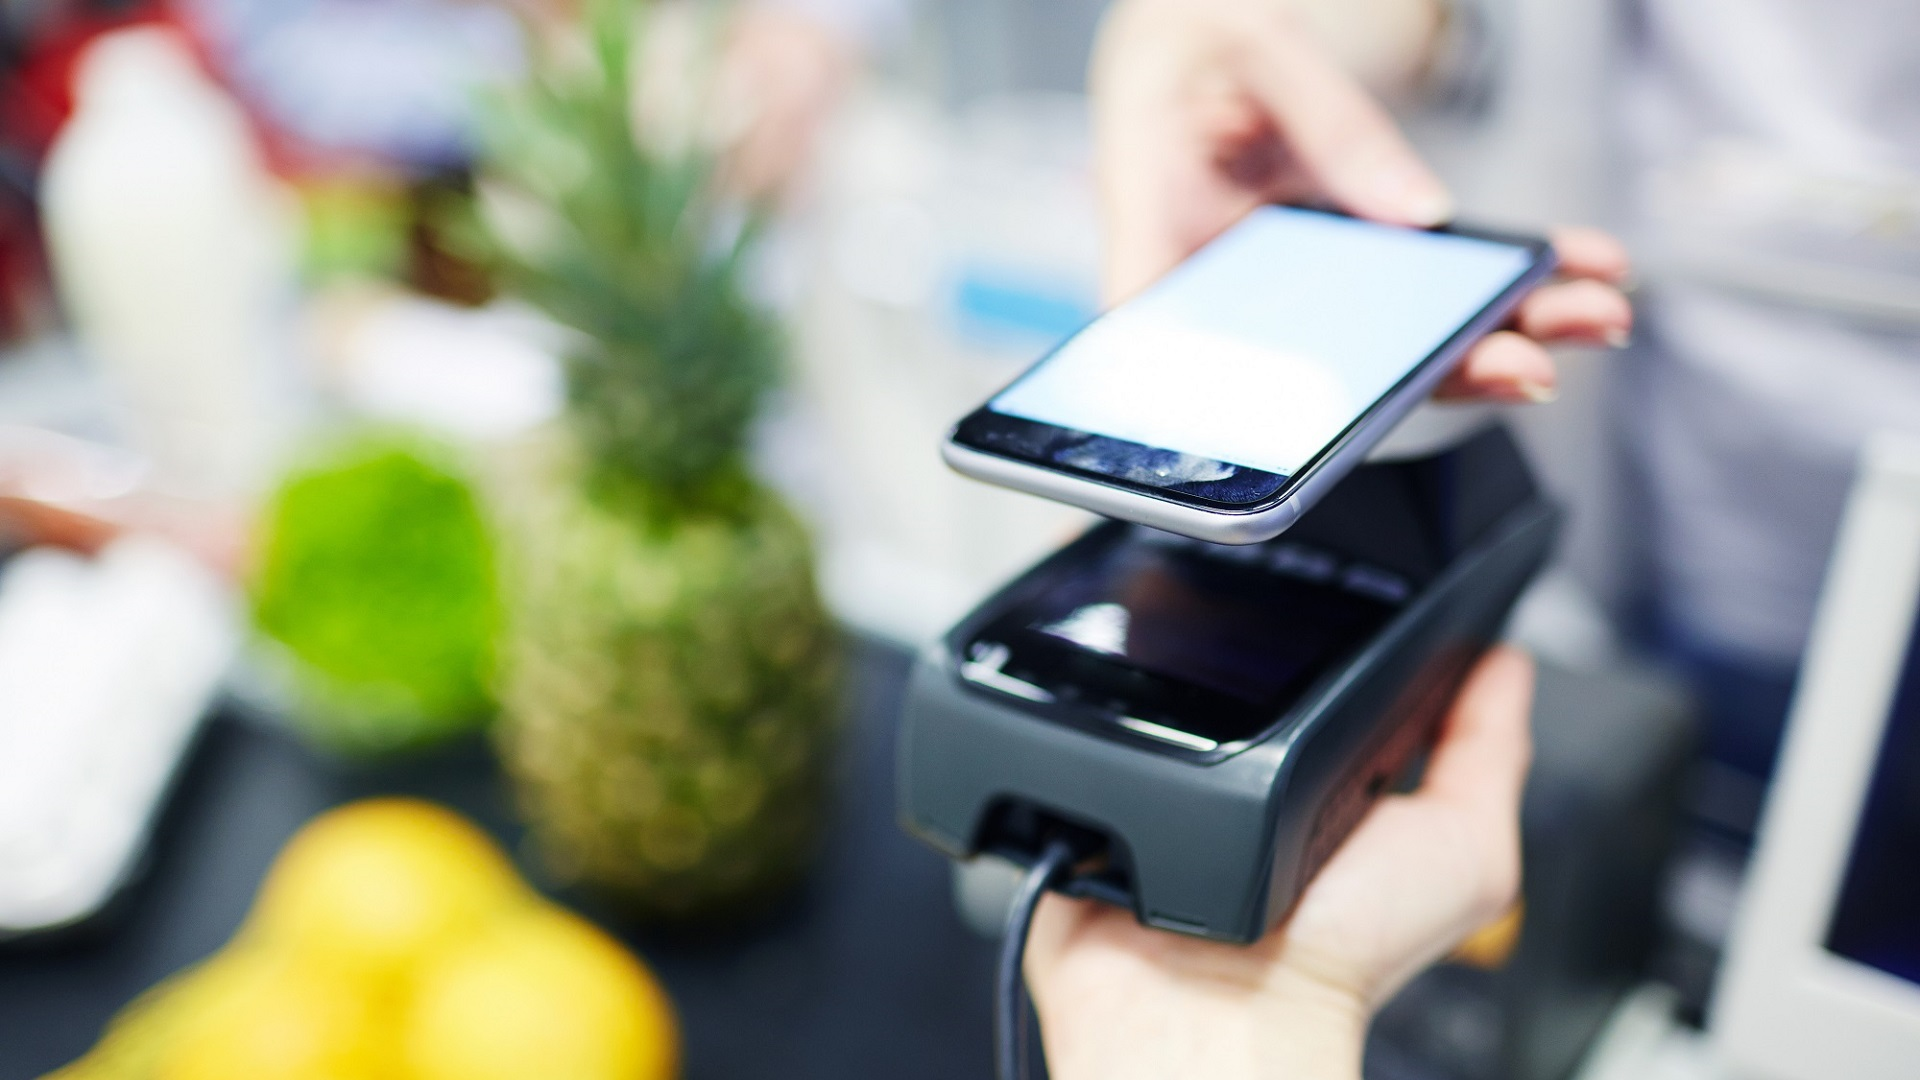 Customer using modern media technologies to make payment in supermarket